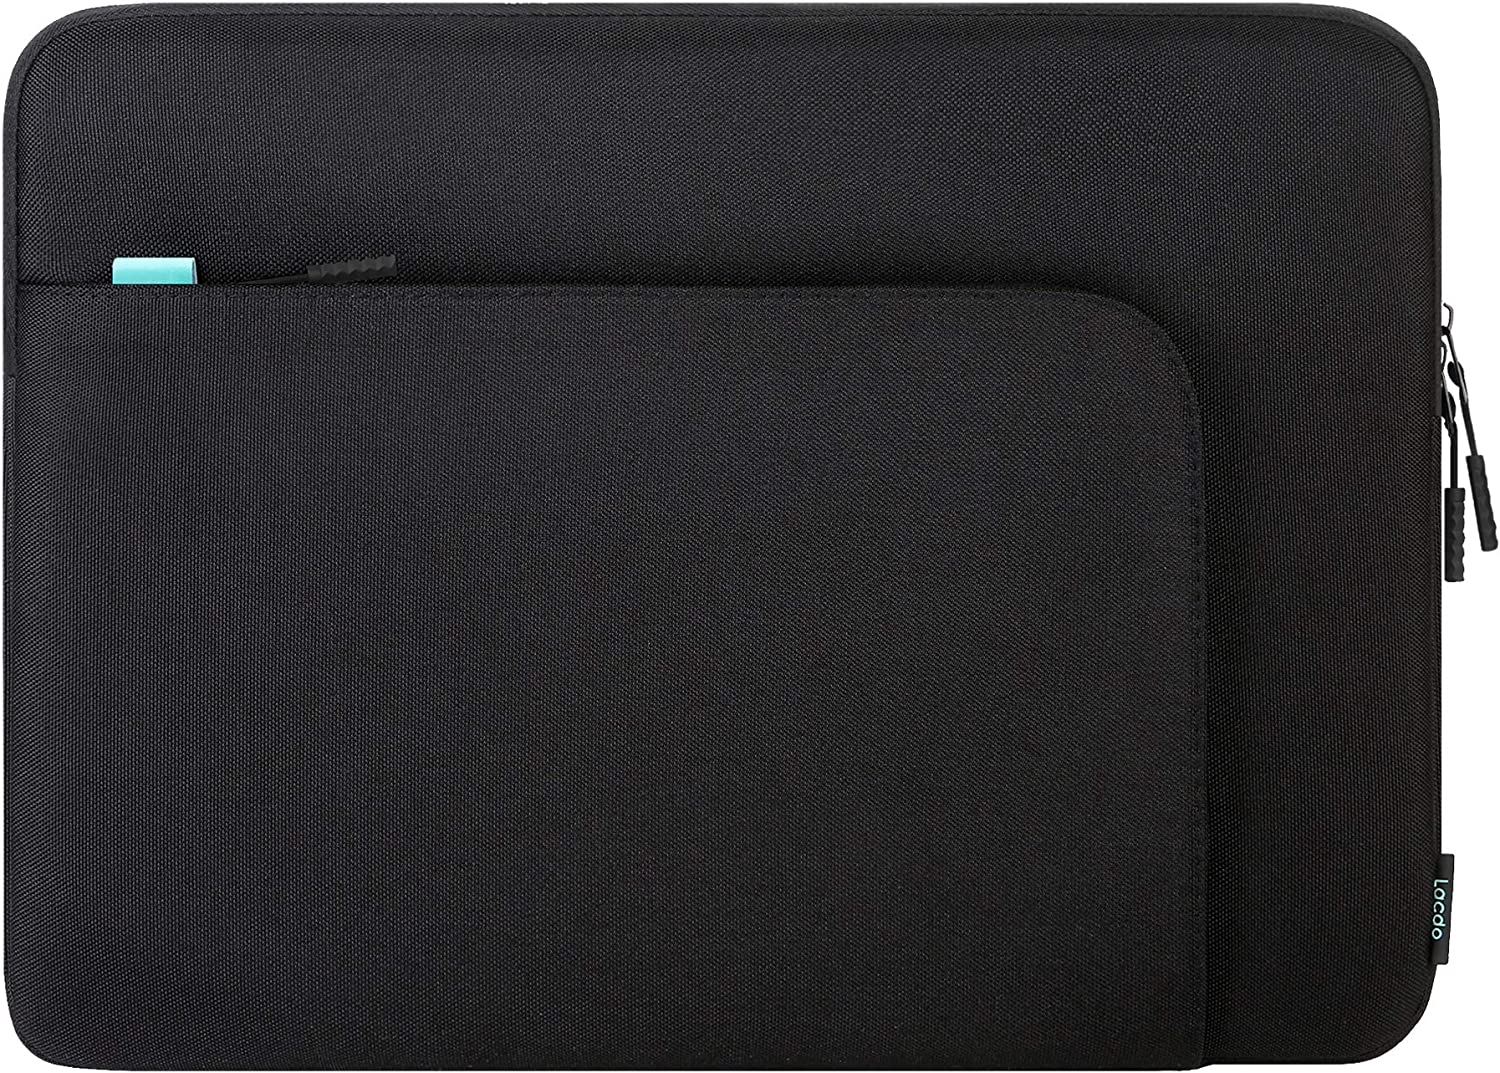 Lacdo 15.6 Inch Laptop Sleeve Case for 15.6